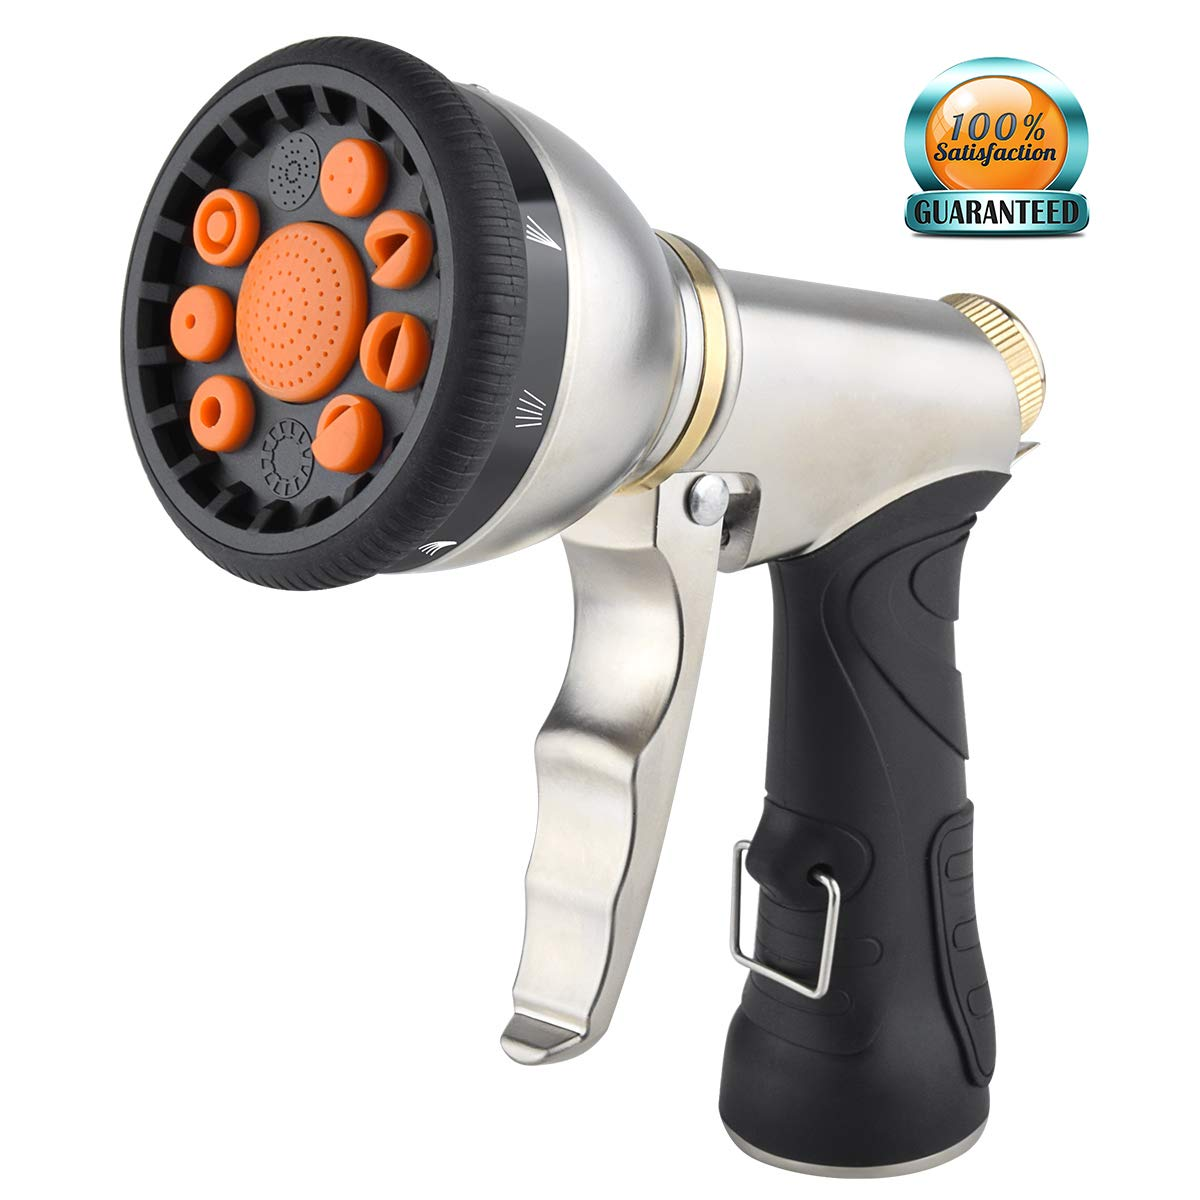 Garden Hose Nozzle Sprayer,Heavy Duty 9 Adjustable Patterns Metal Spray Gun Grip Trigger Nozzle,Best High Pressure Metal Body & Grip Leak Proof Lawn Sprayer for Plants,Car Wash,Cleaning,Pets Shower